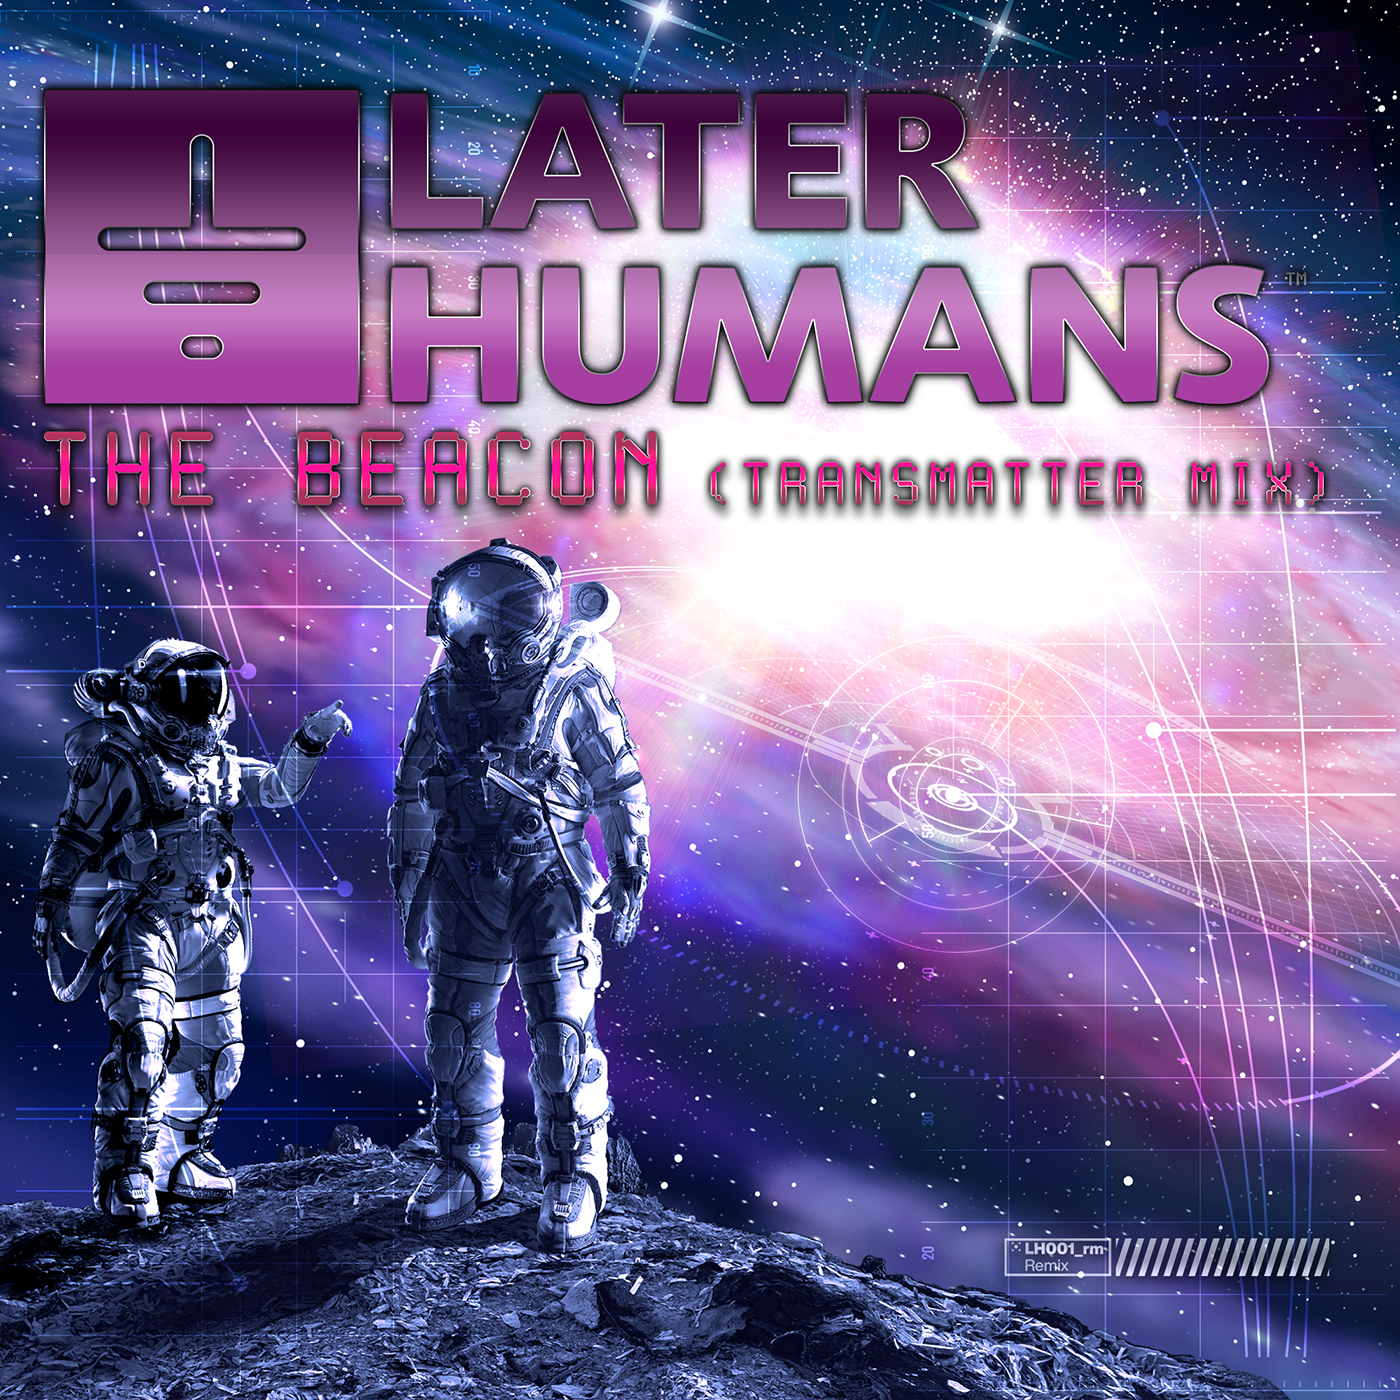 """Later Humans' """"The Beacon (Transmatter Mix)"""" Single Cover"""